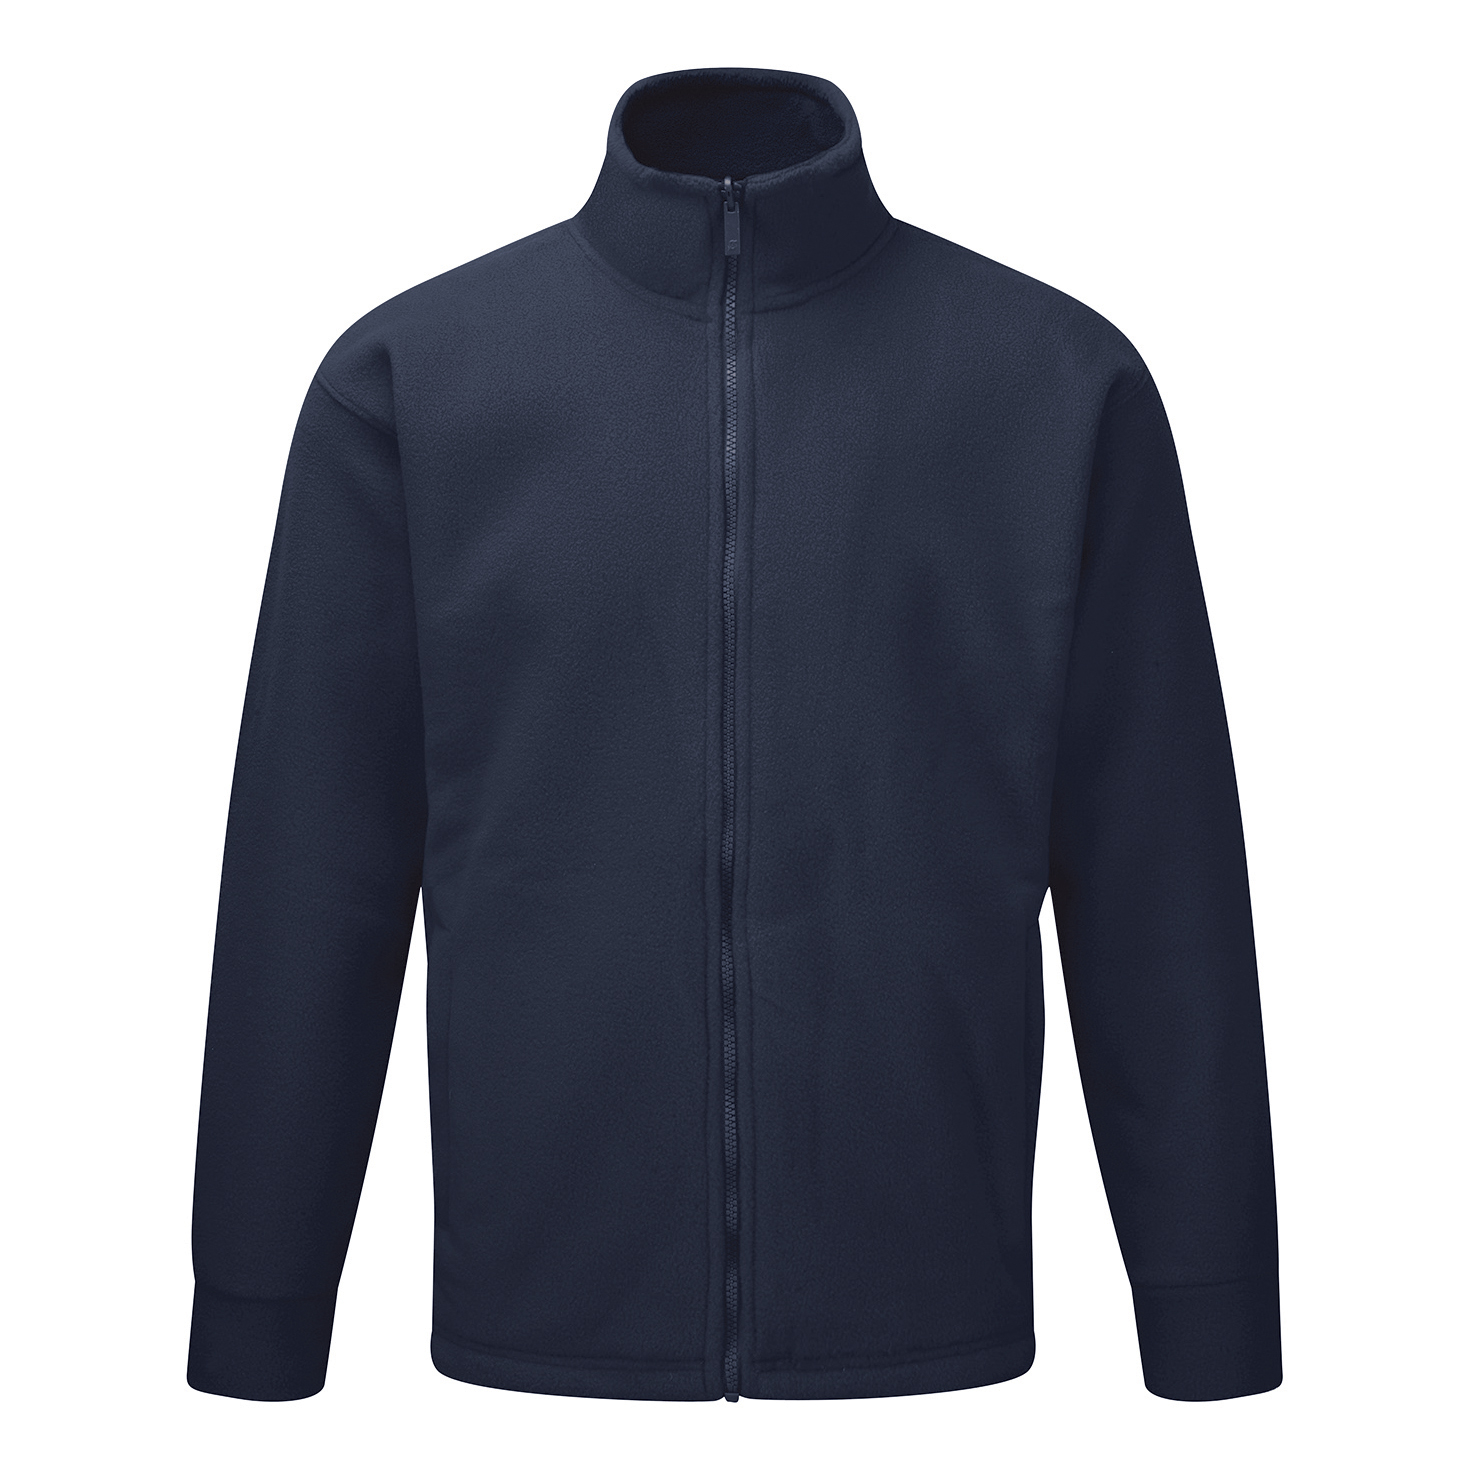 ST Basic Fleece Jacket Elasticated Cuffs and Full Zip Front XXLarge Navy Ref 59095 *Approx 3 Day L/Time*